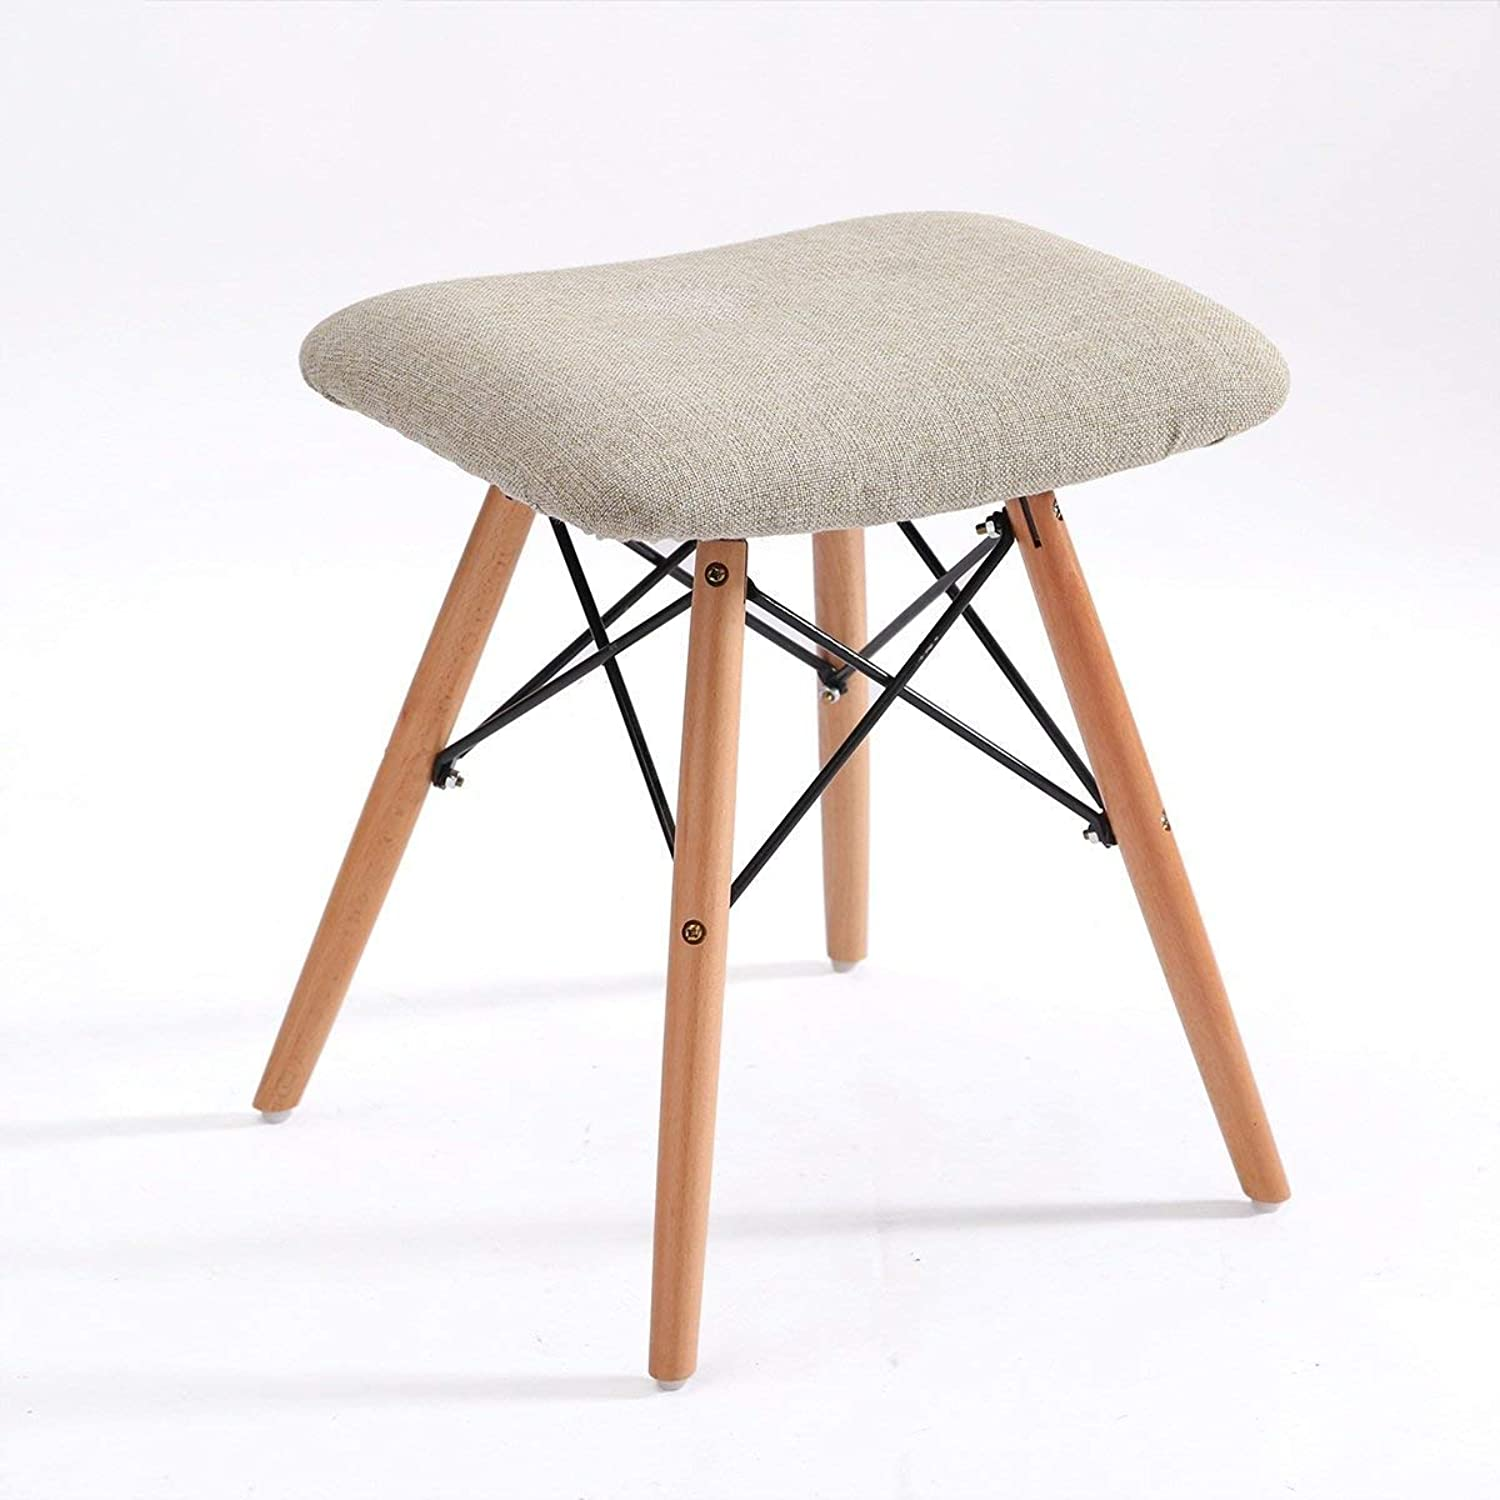 Stool Chair Solid Wood Stool Fabric Dining Stool Makeup Stool Fashion Creative Computer Stool Home Bench (color   A)